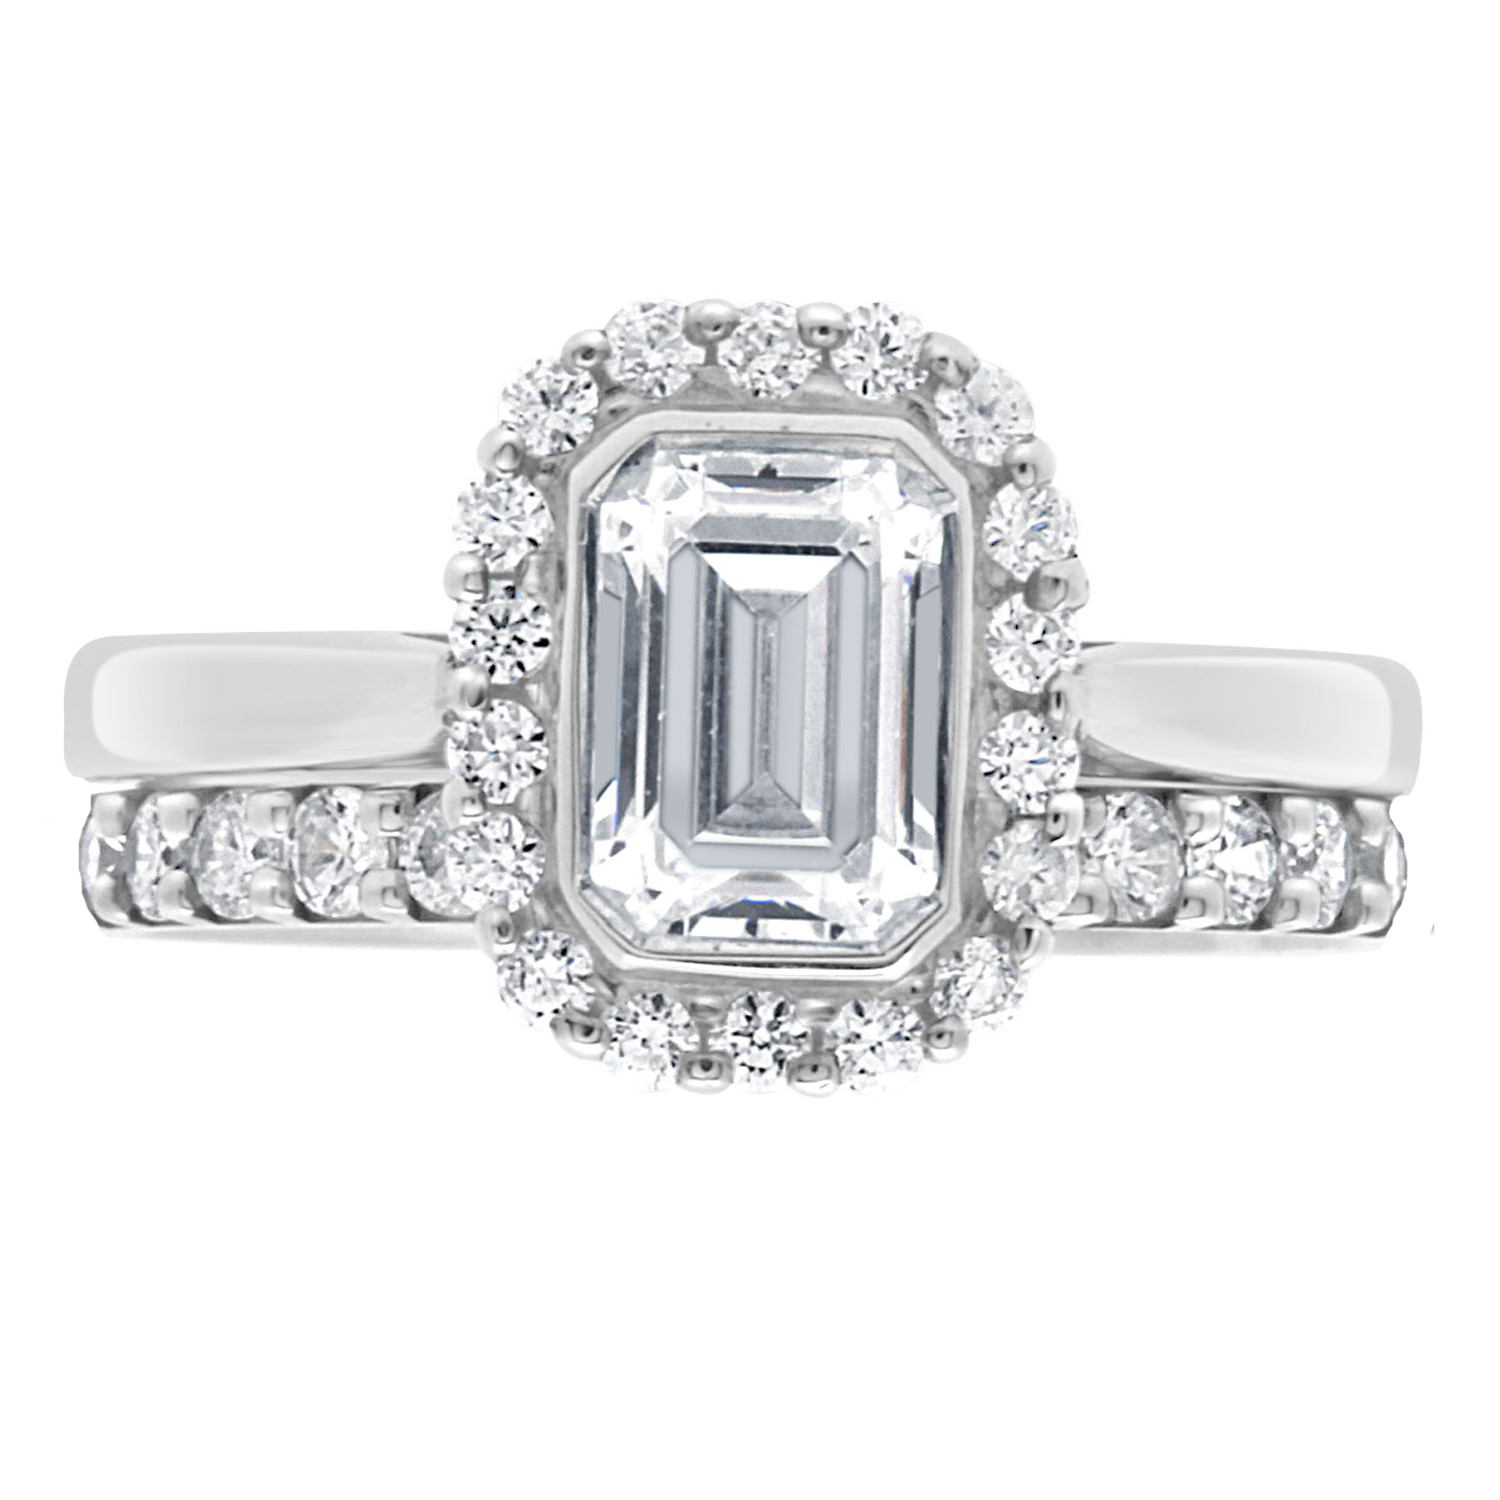 Monica Engagement Ring Is An Emerald Cut Diamond In White Gold